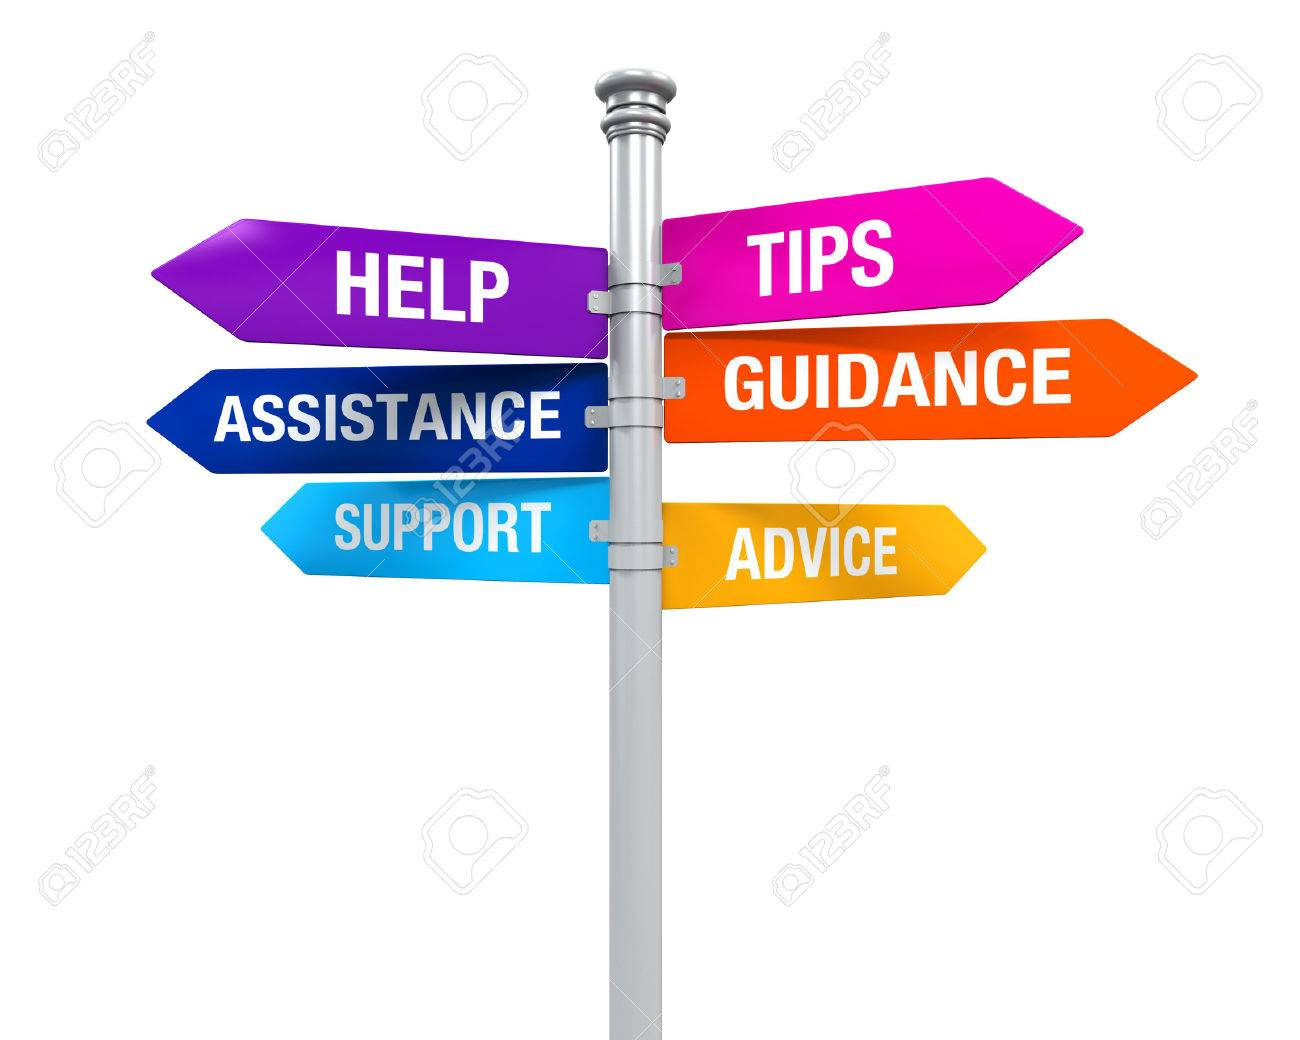 Sign Directions Support Help Tips Advice Guidance Assistance - 29096033